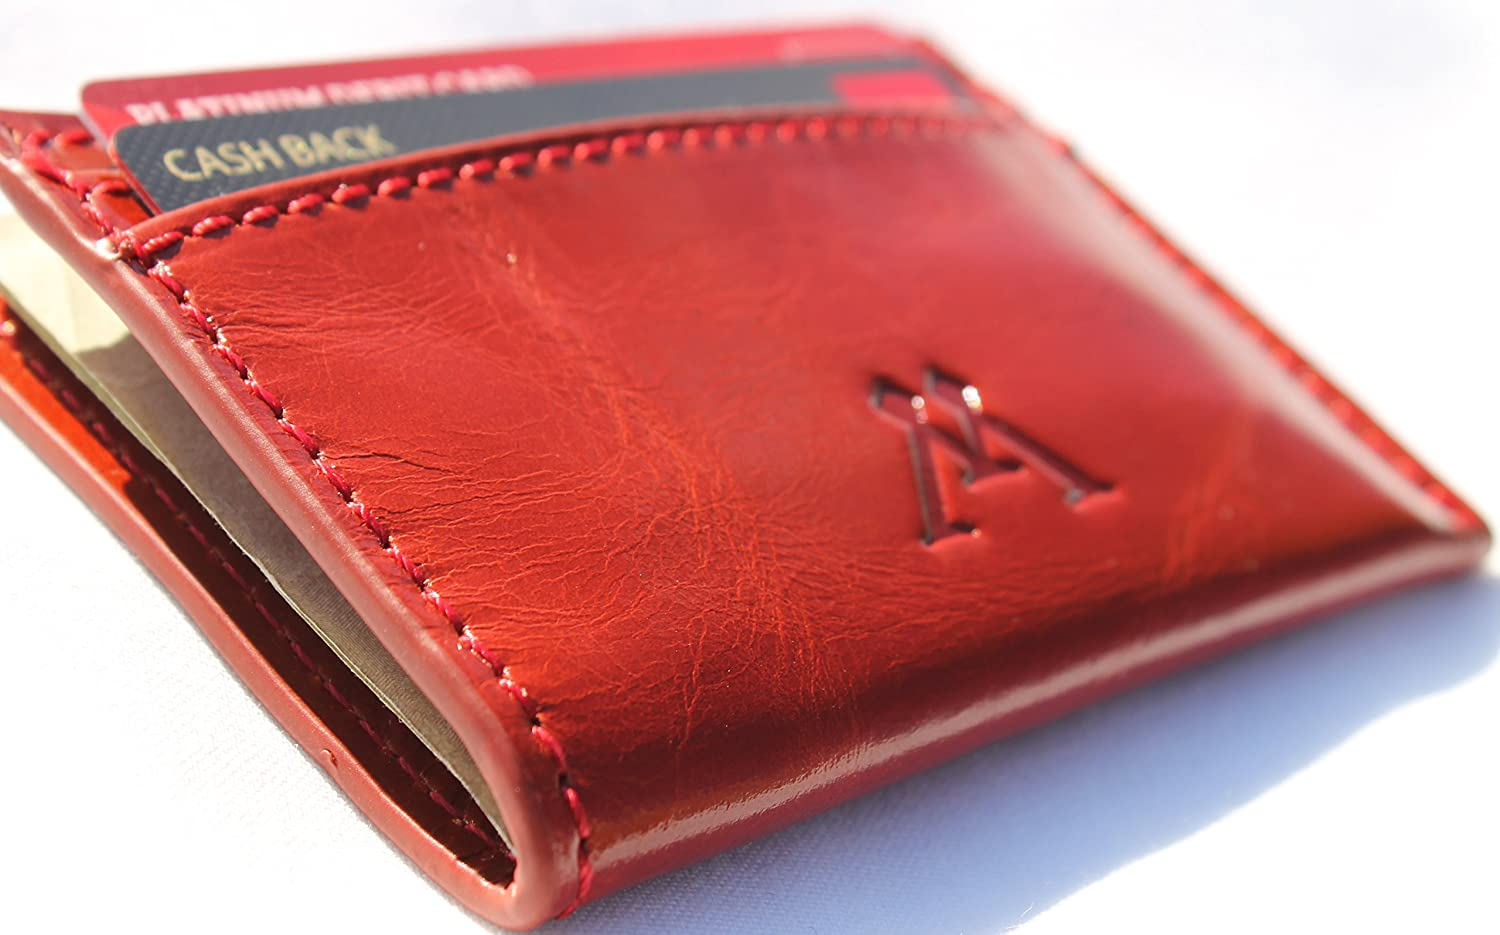 NEW BAGLIONI ITALIA MEN/'S TUSCAN LEATHER FRONT POCKET CARD CASE WALLET COGNAC